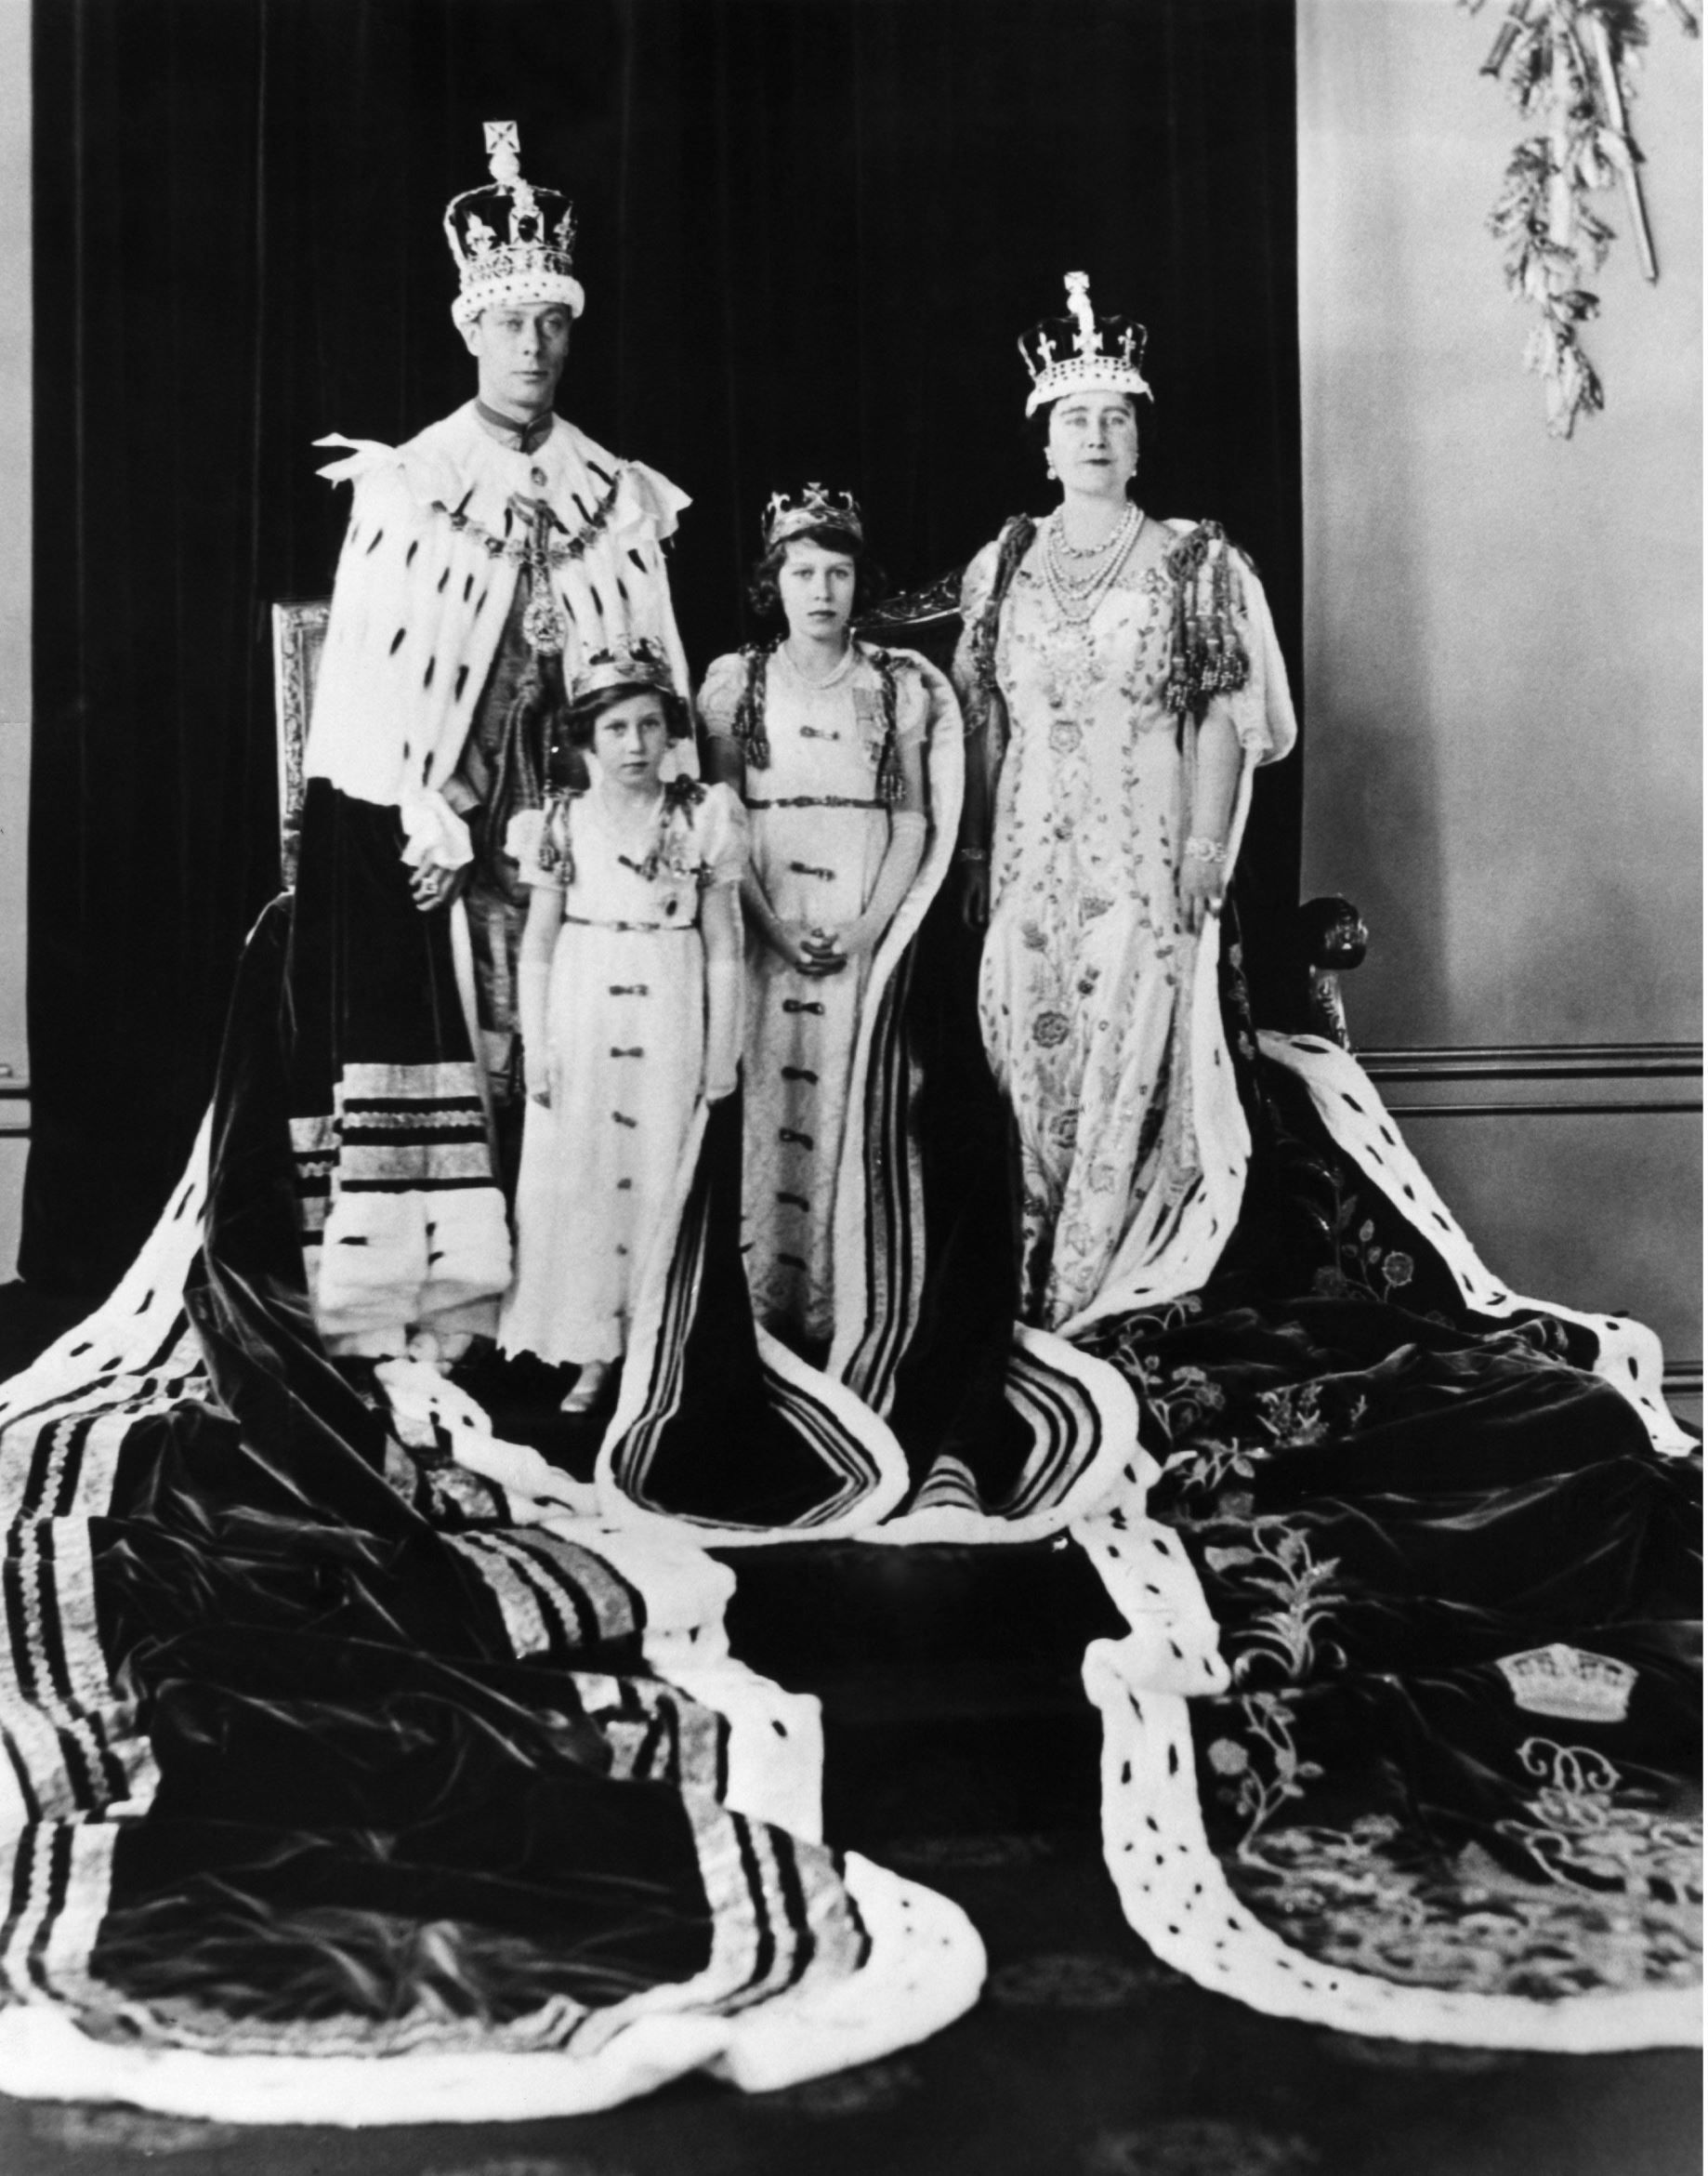 Queen Elizabeth turns 89 1937 Her father's coronation as